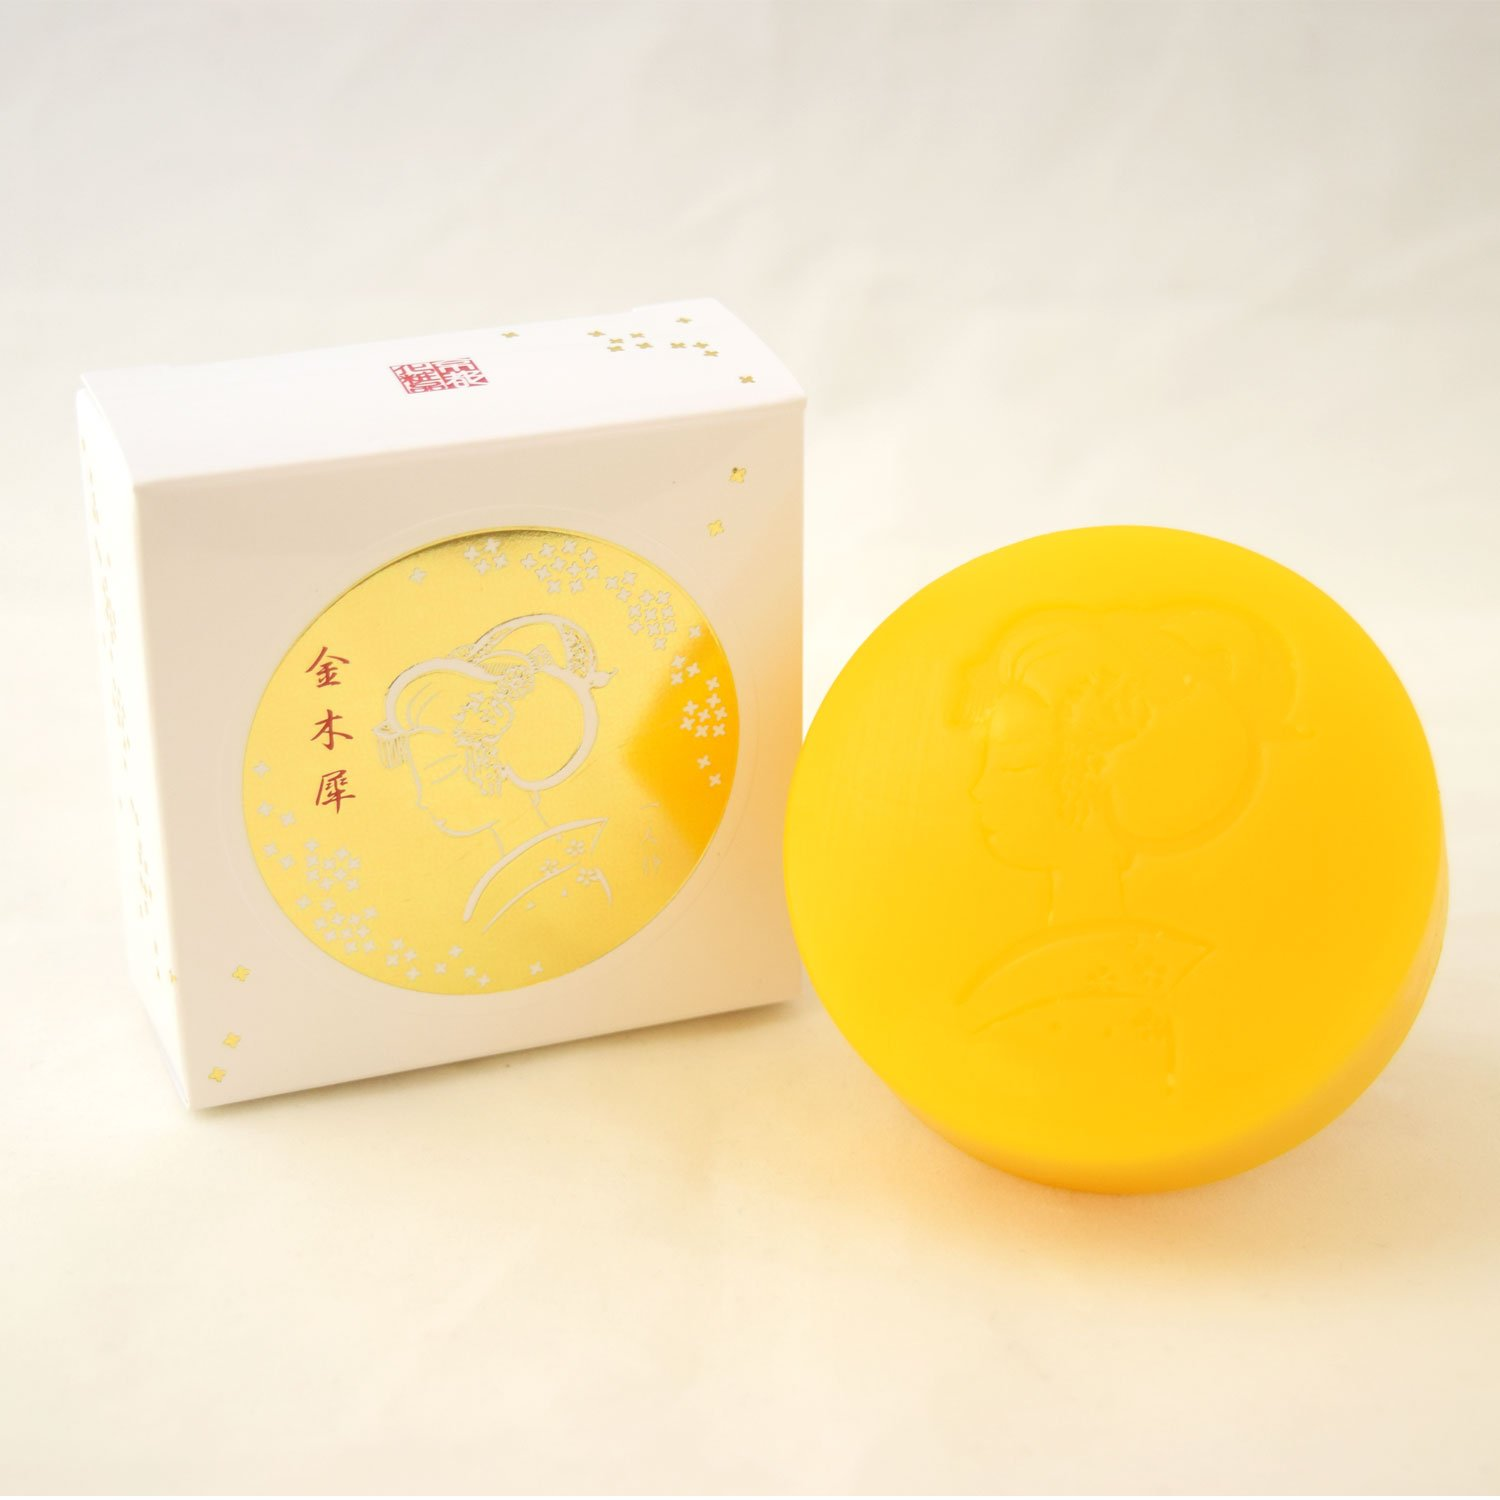 Kyoto Limited Cosmetics Face Body Soap – Gentle Scent